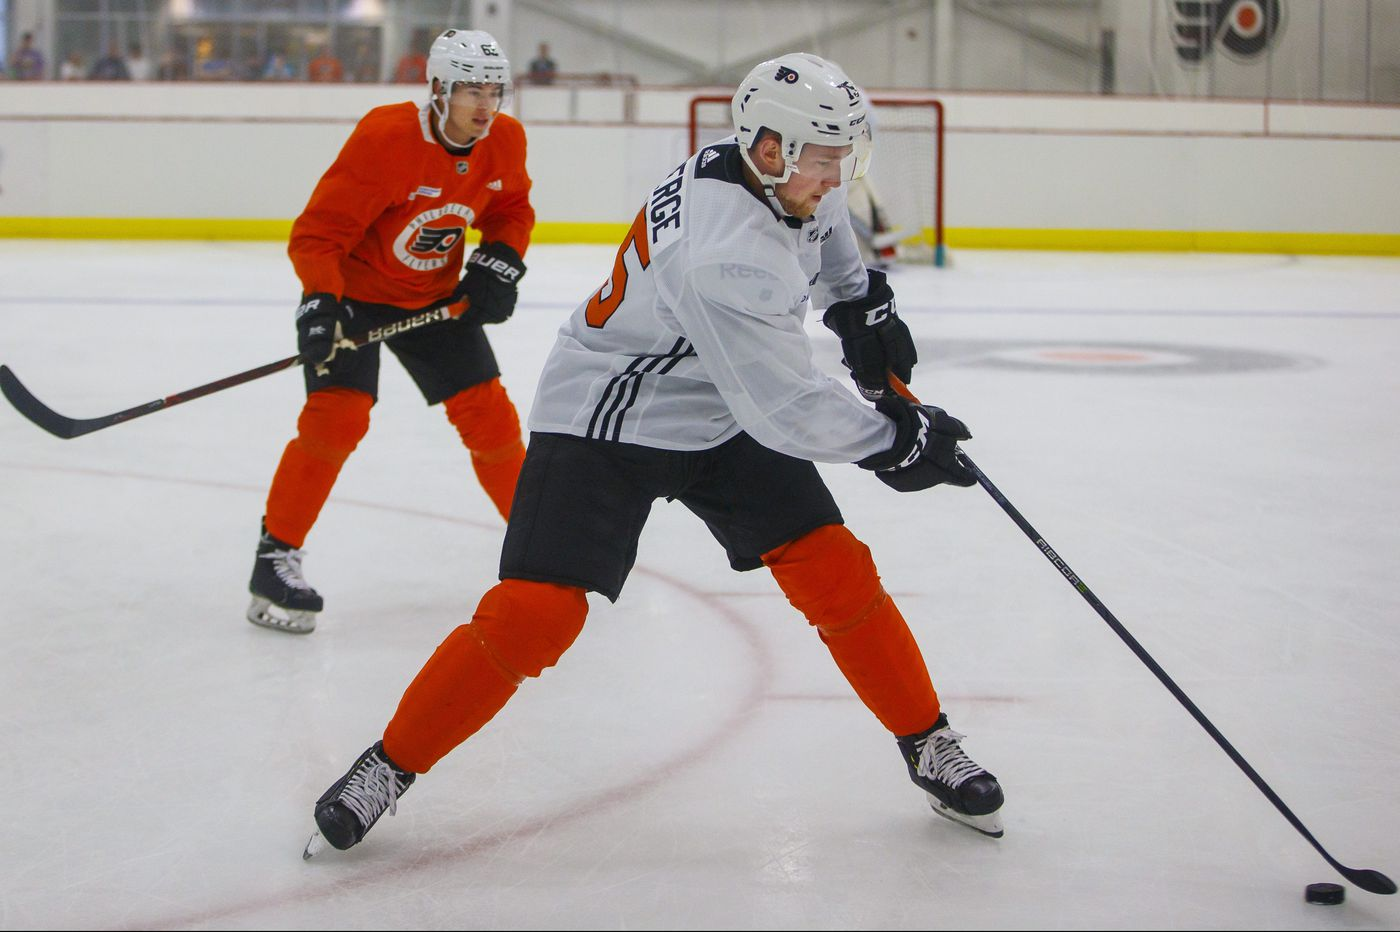 Flyers prospect Pascal Laberge opens eyes at development camp